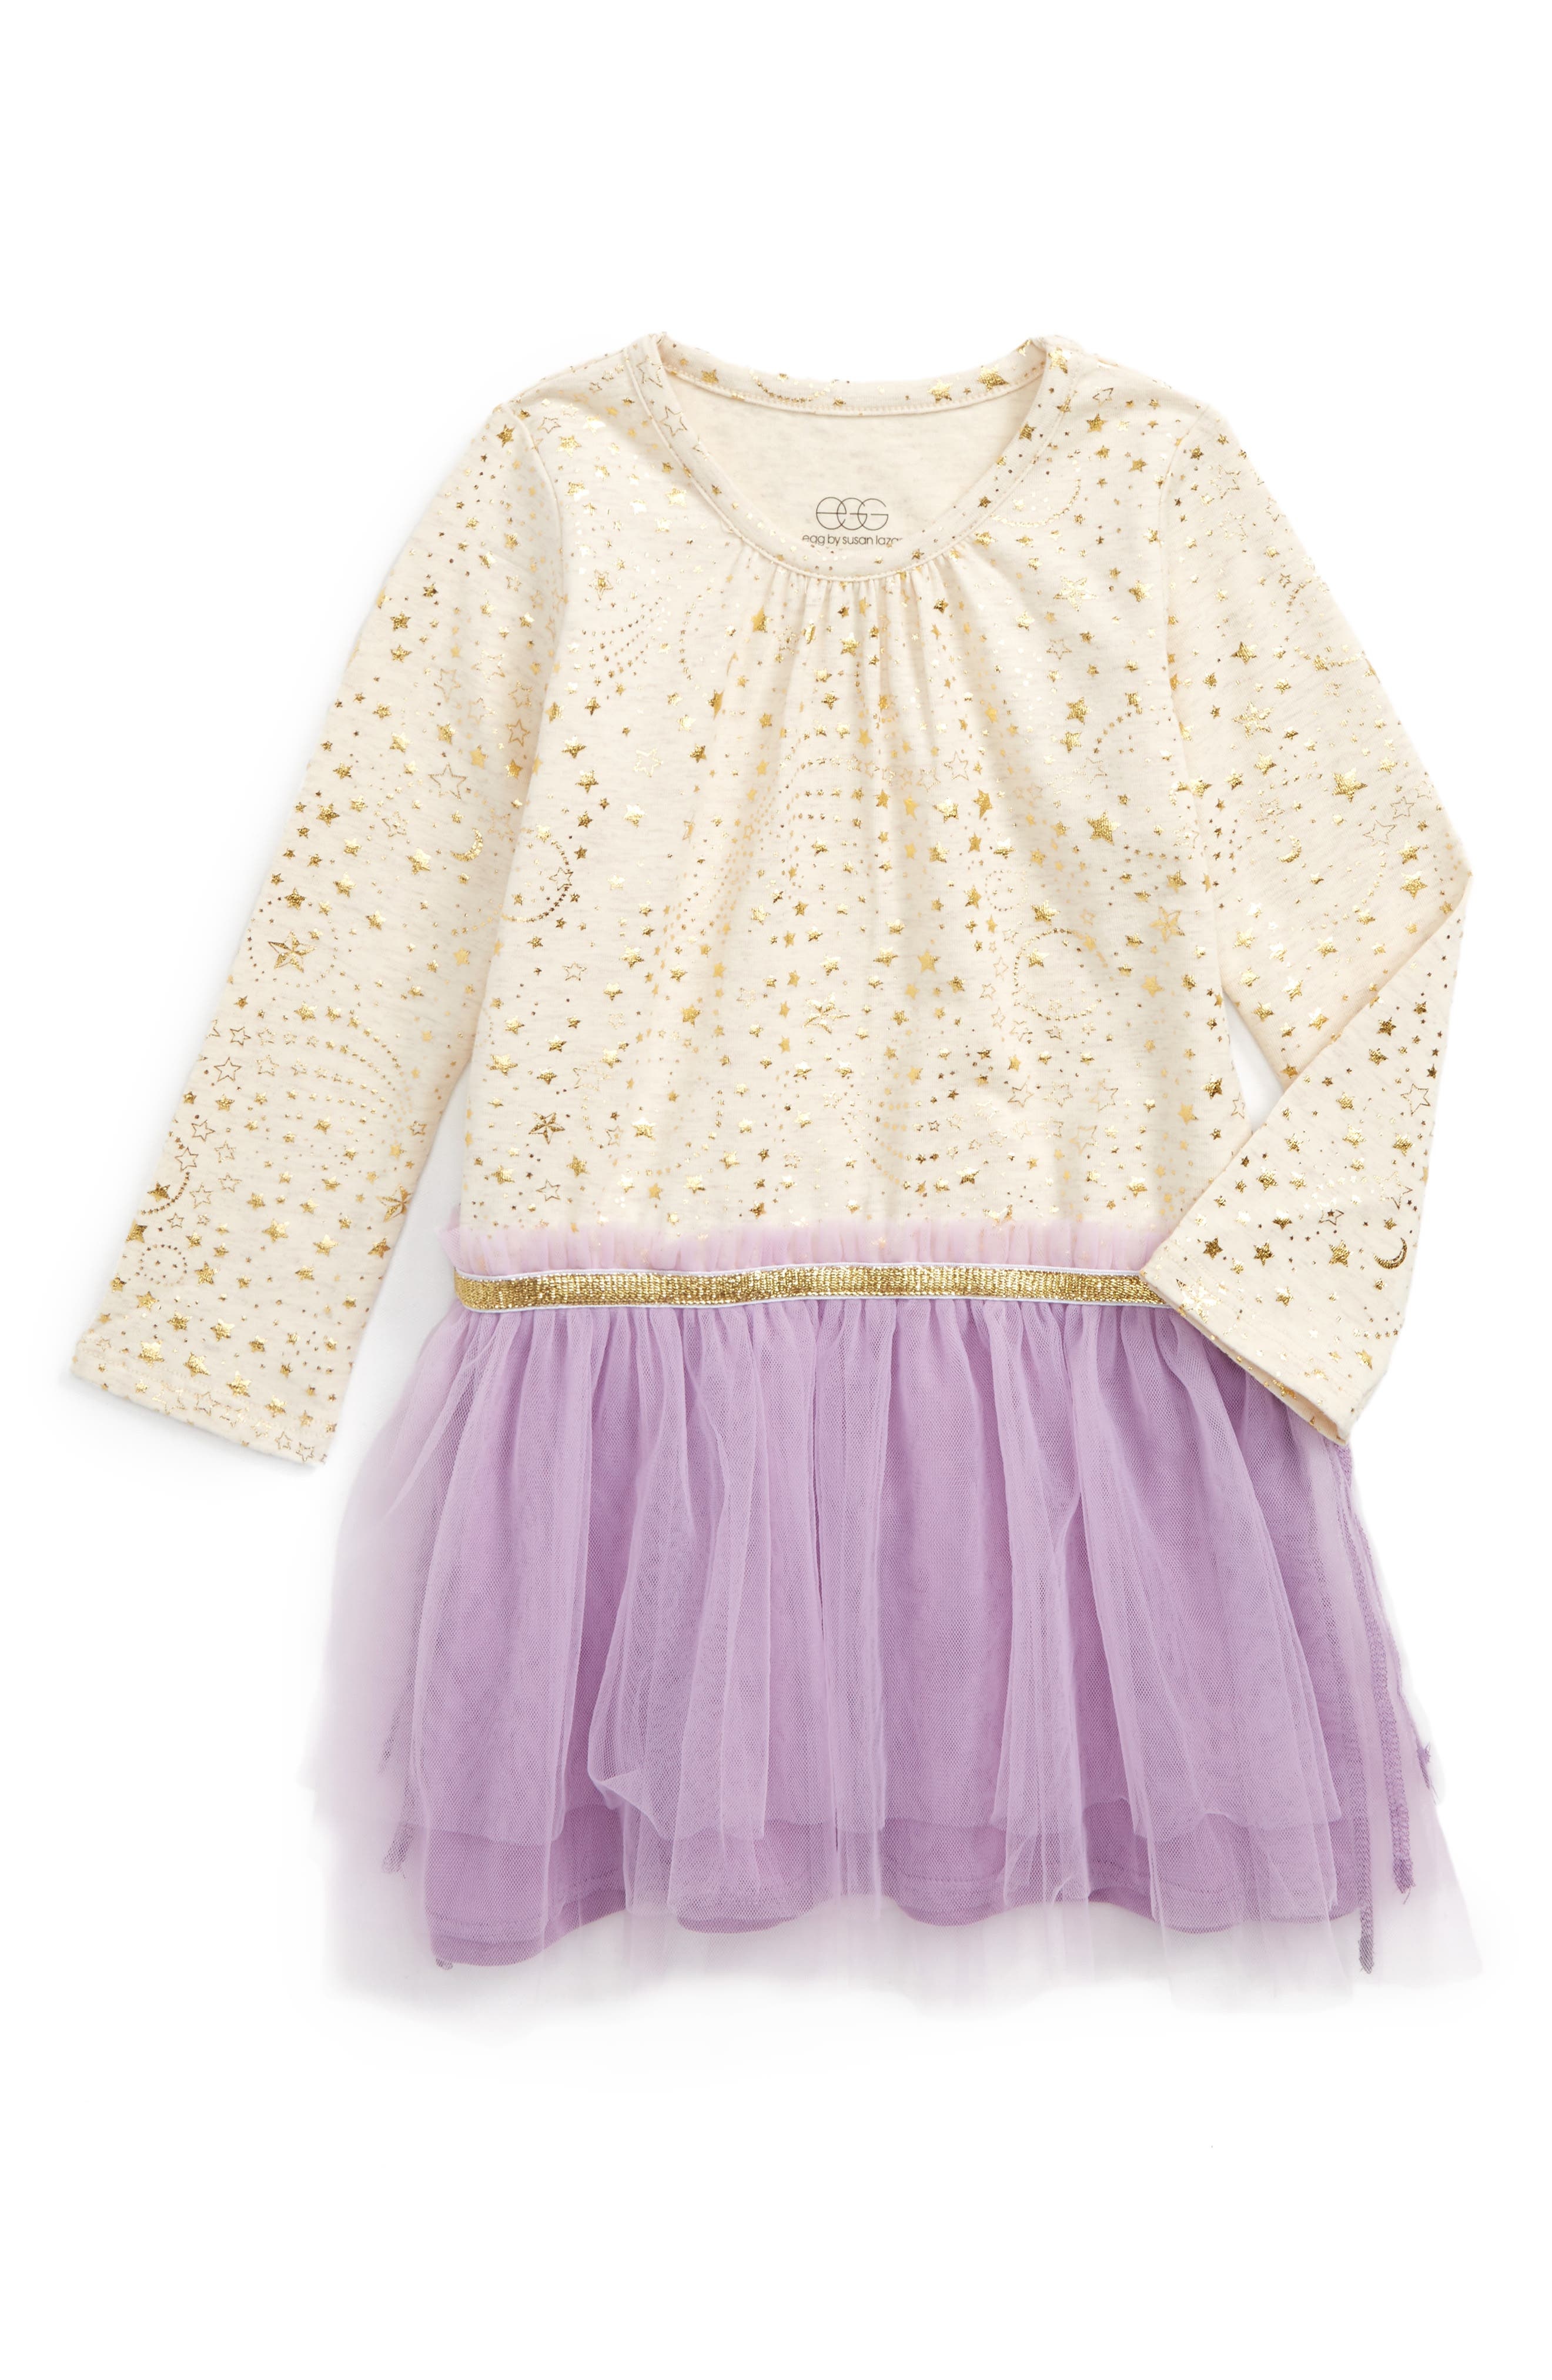 egg by susan lazar Amy Mixed Media Dress (Baby Girls)